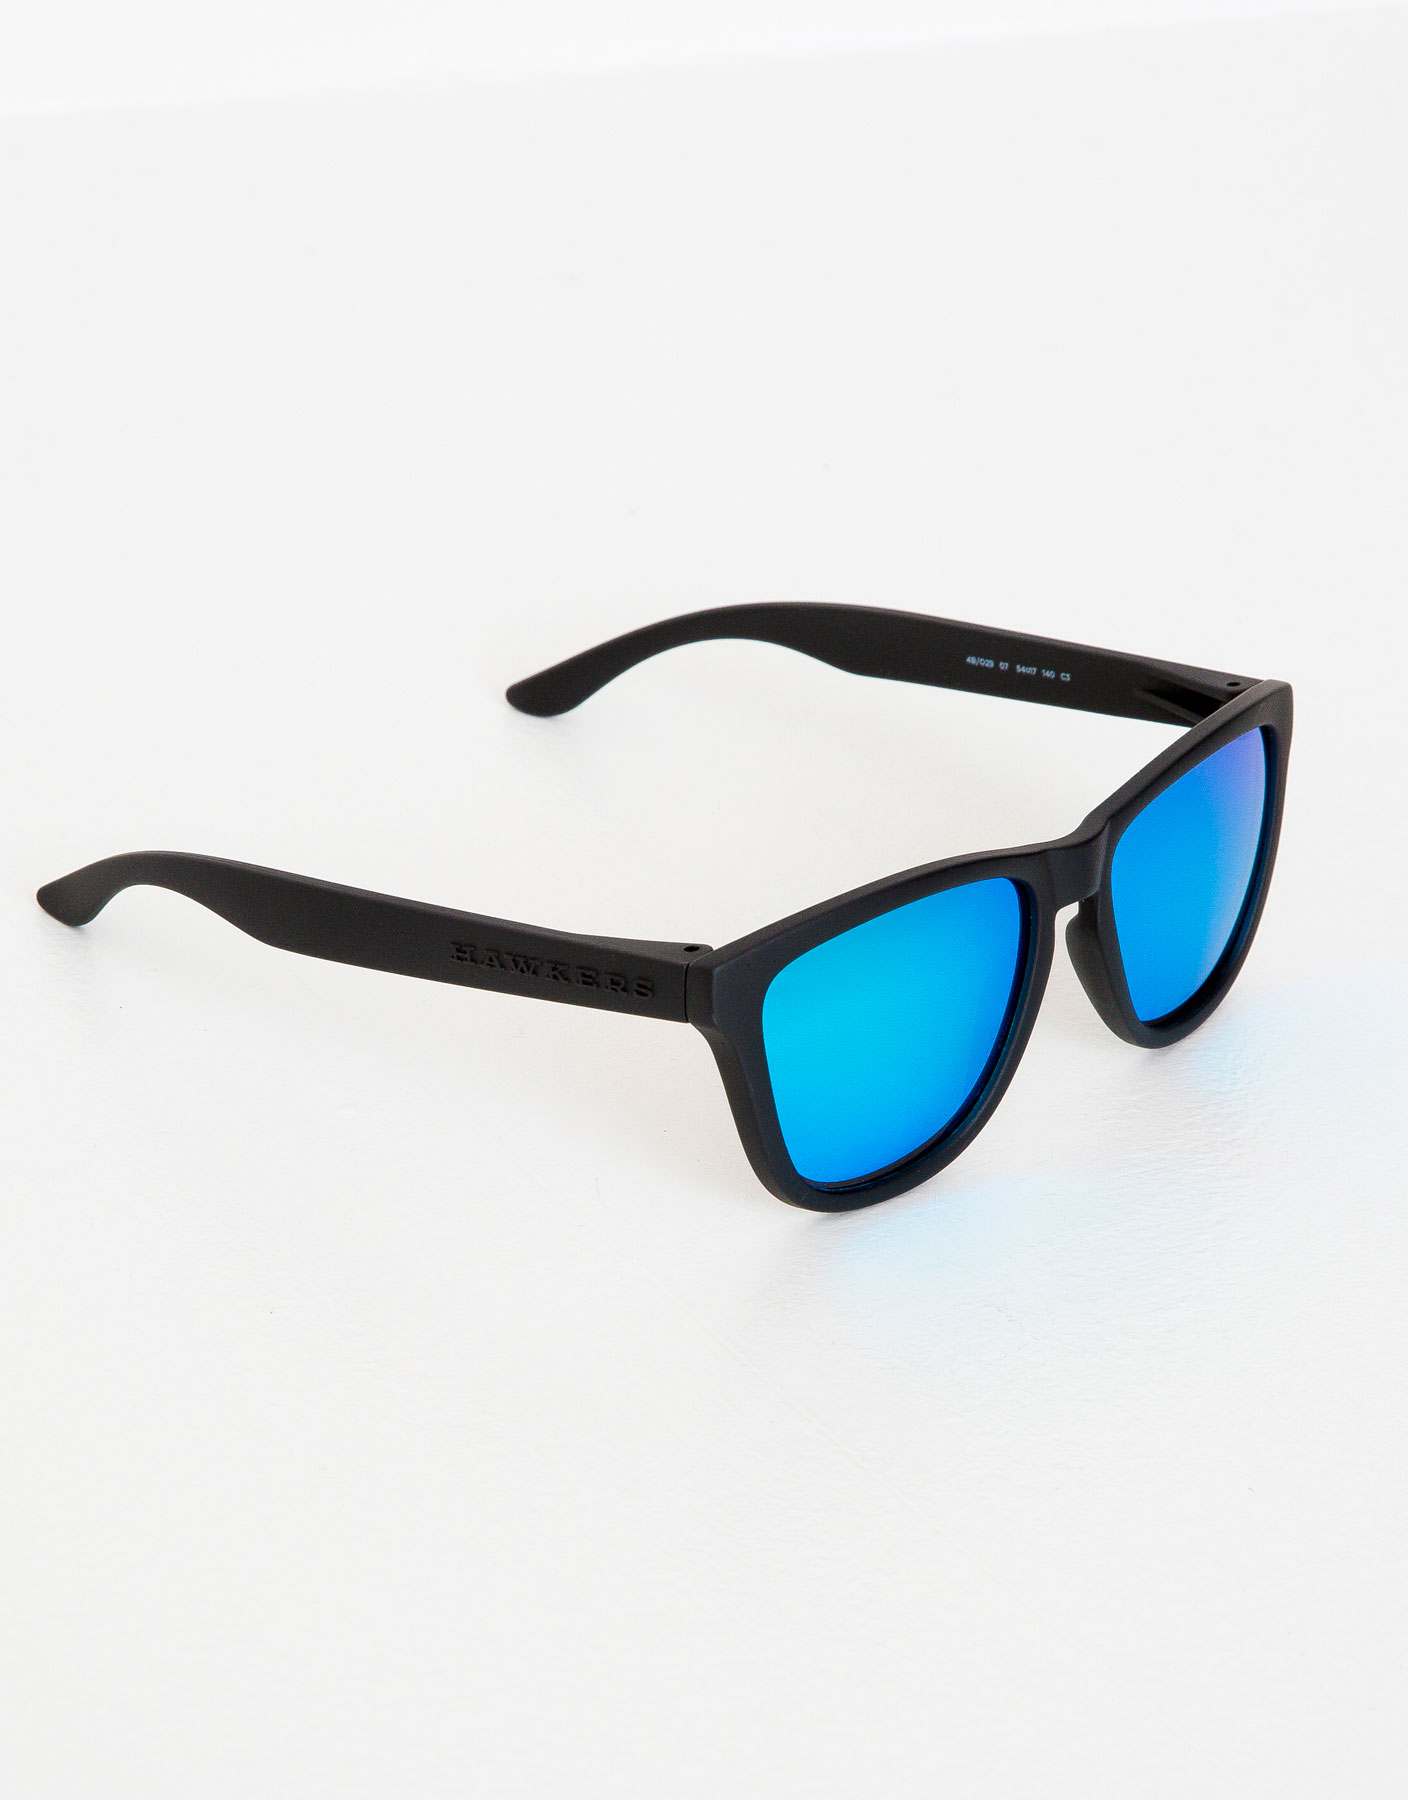 Ulleres de sol hawkers carbon black clear blue one